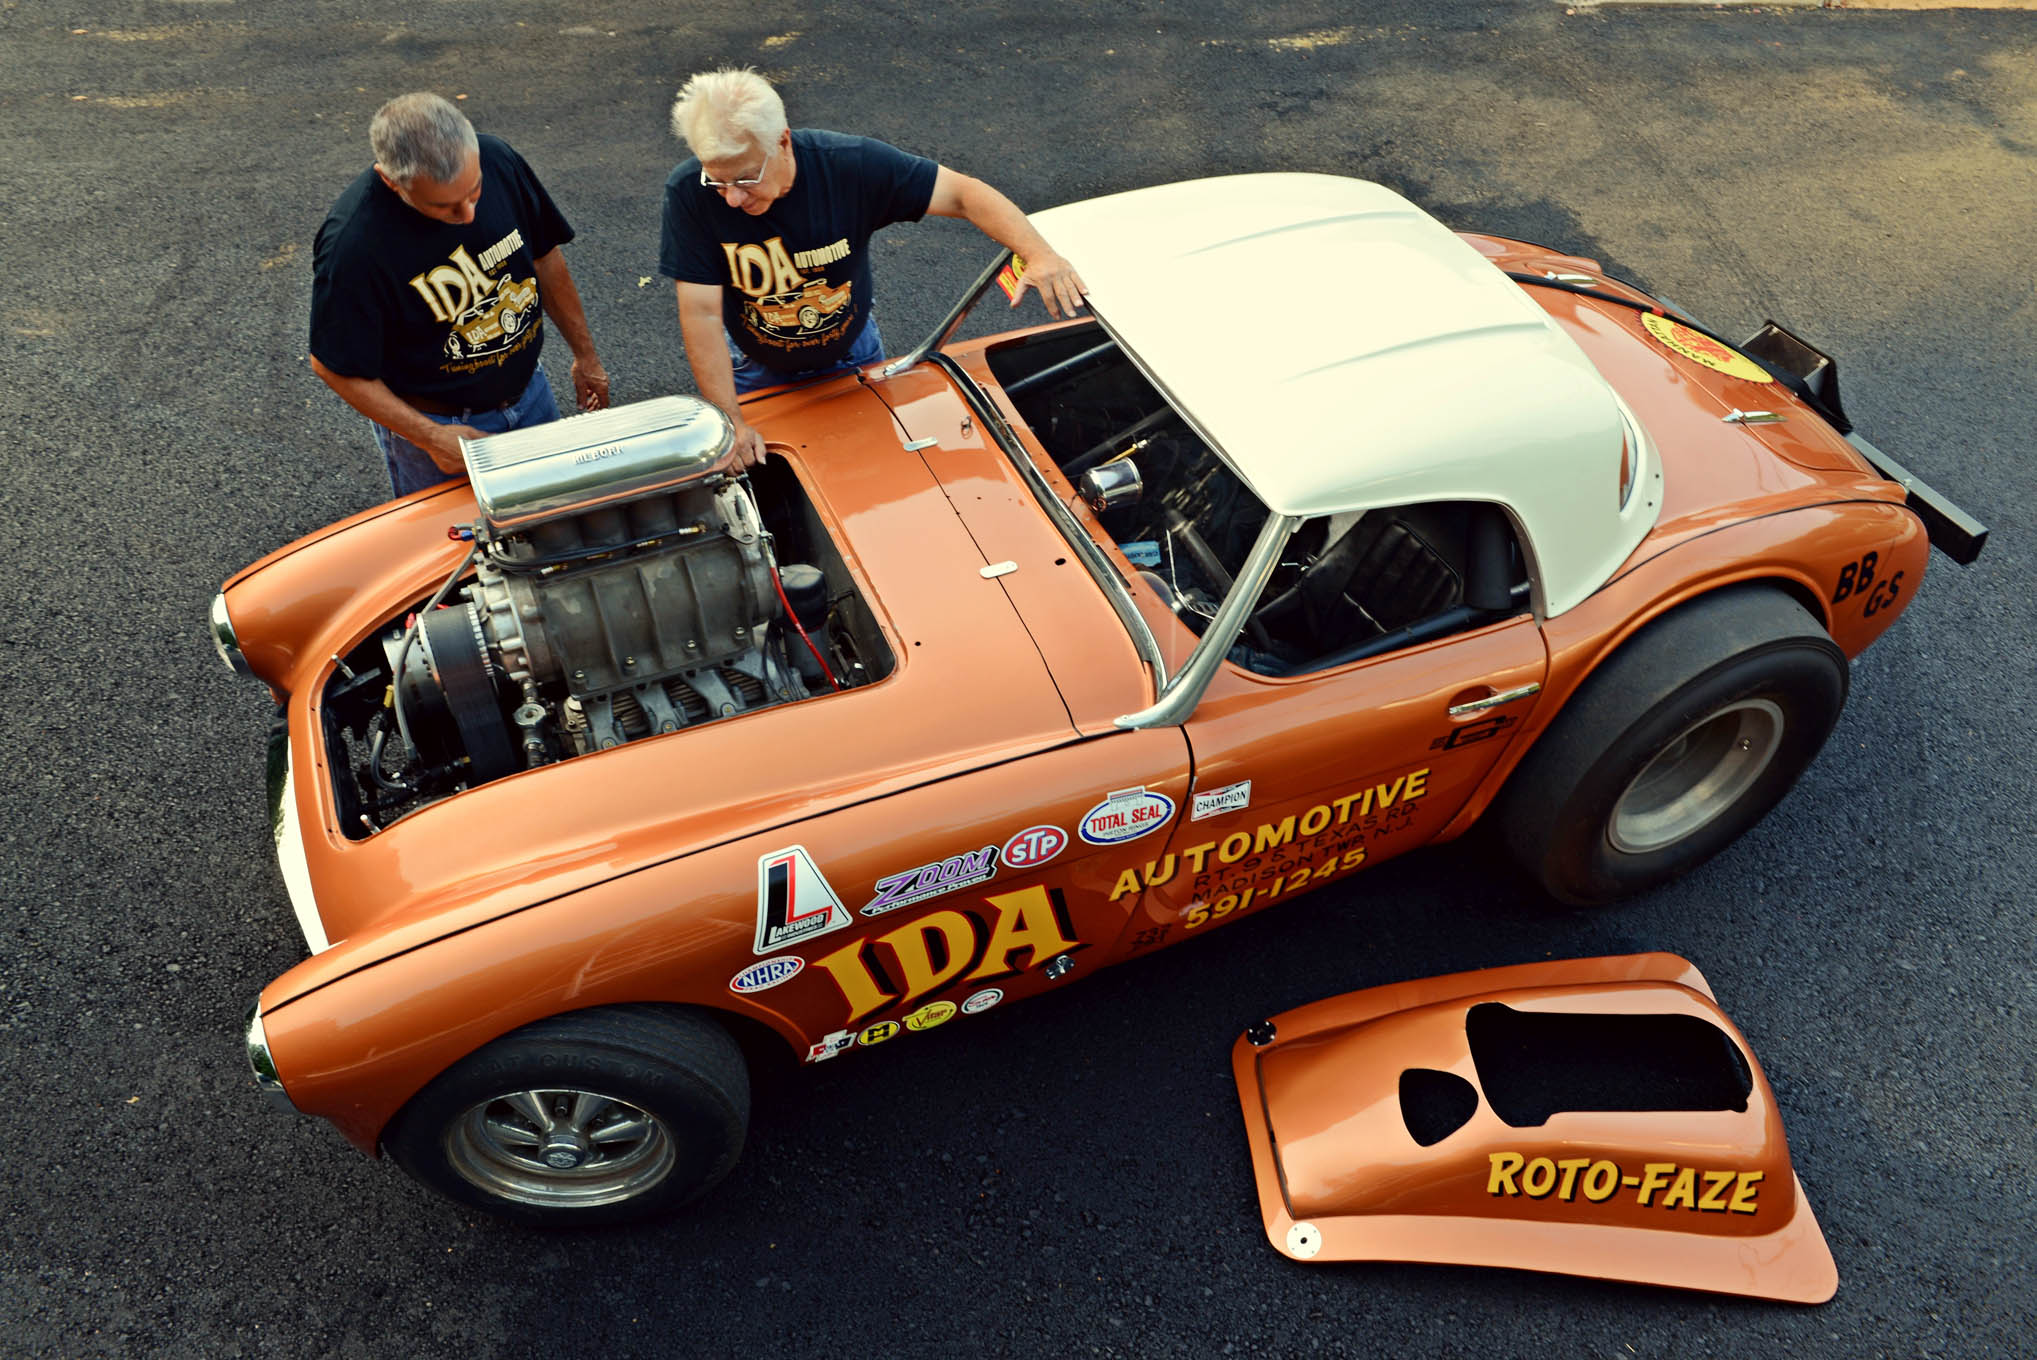 From the start, the Hemi Healy team has been a family affair. Bob's cousin, Vinny, was with him from the beginning, as a 14-year-old pit-crew member. Today, they are as close as ever.